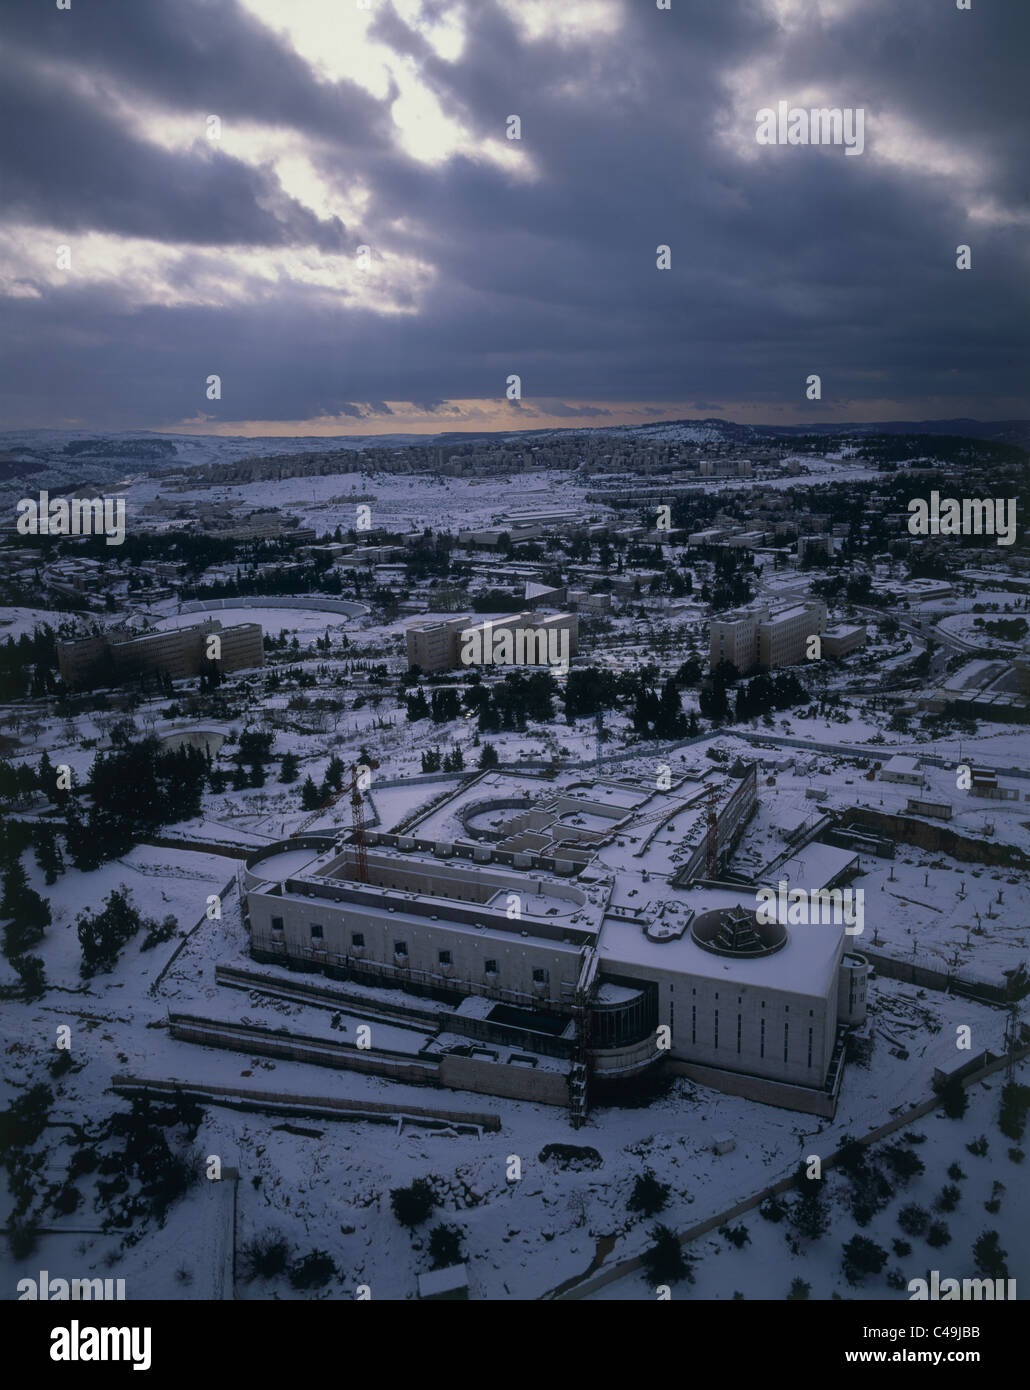 Aerial photograph of Israel's Supreme Court in Jerusalem at winter - Stock Image